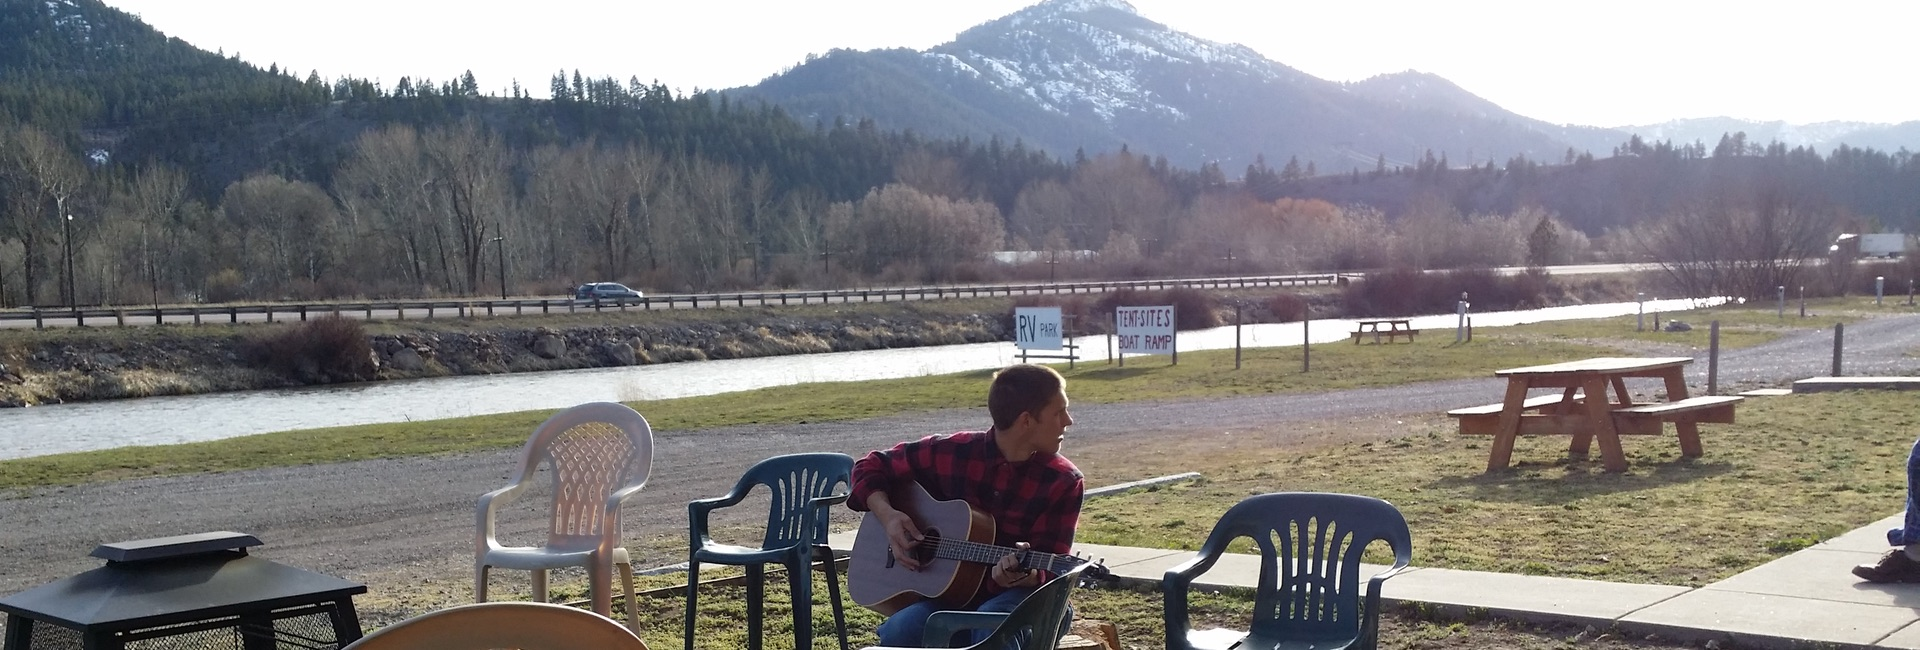 Guitar by the river